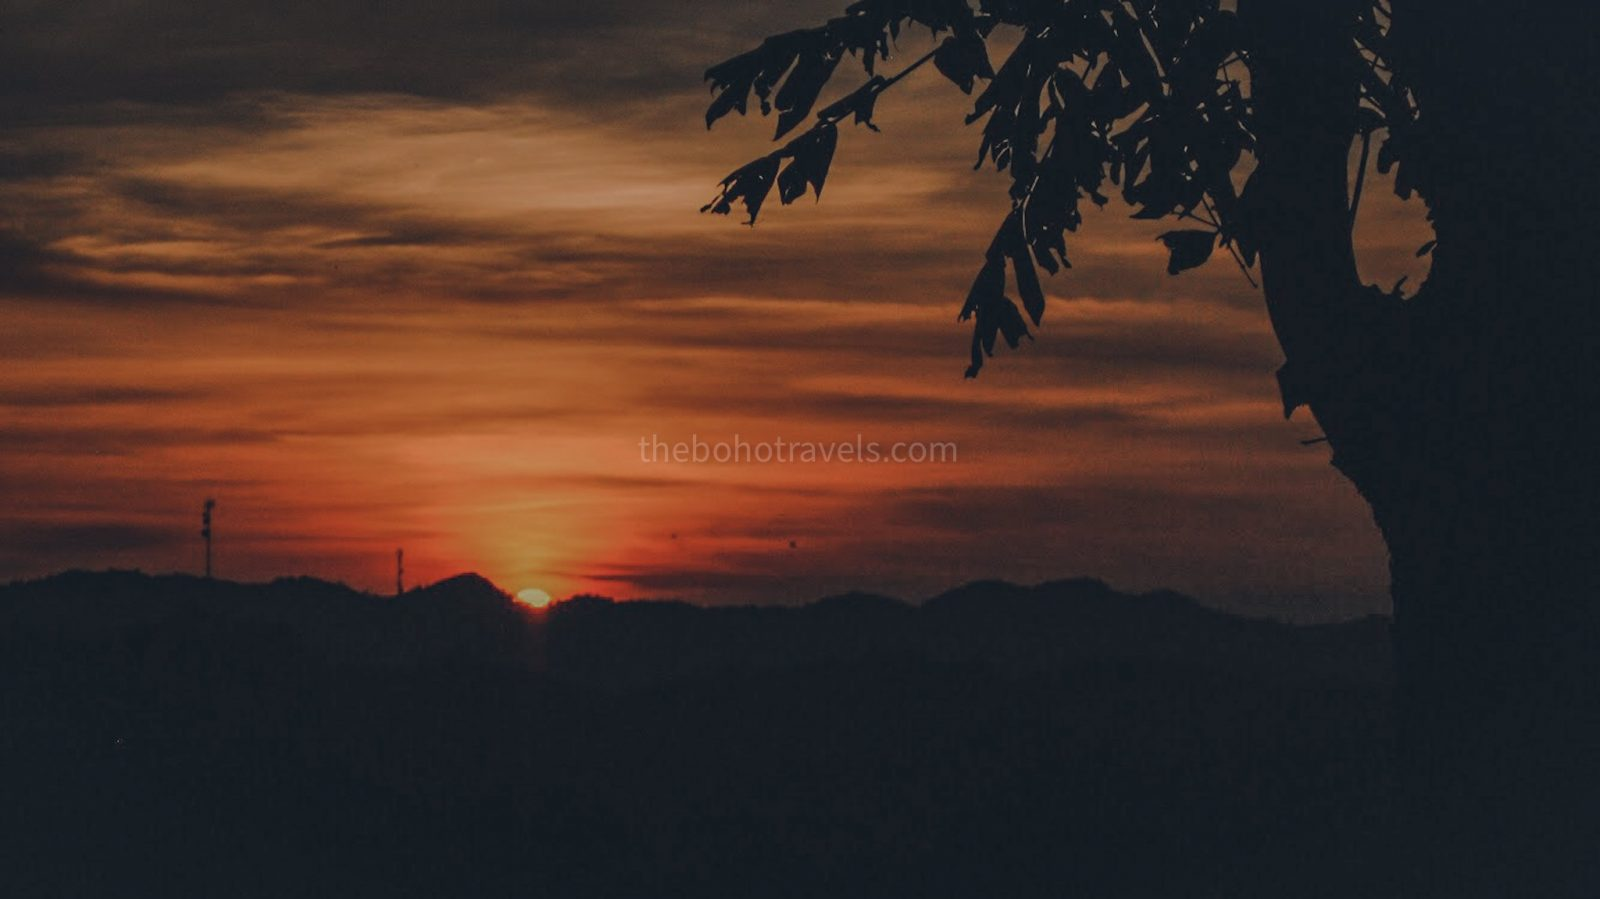 [Philippines] Beautiful sunset at Chocolate Hills in Bohol